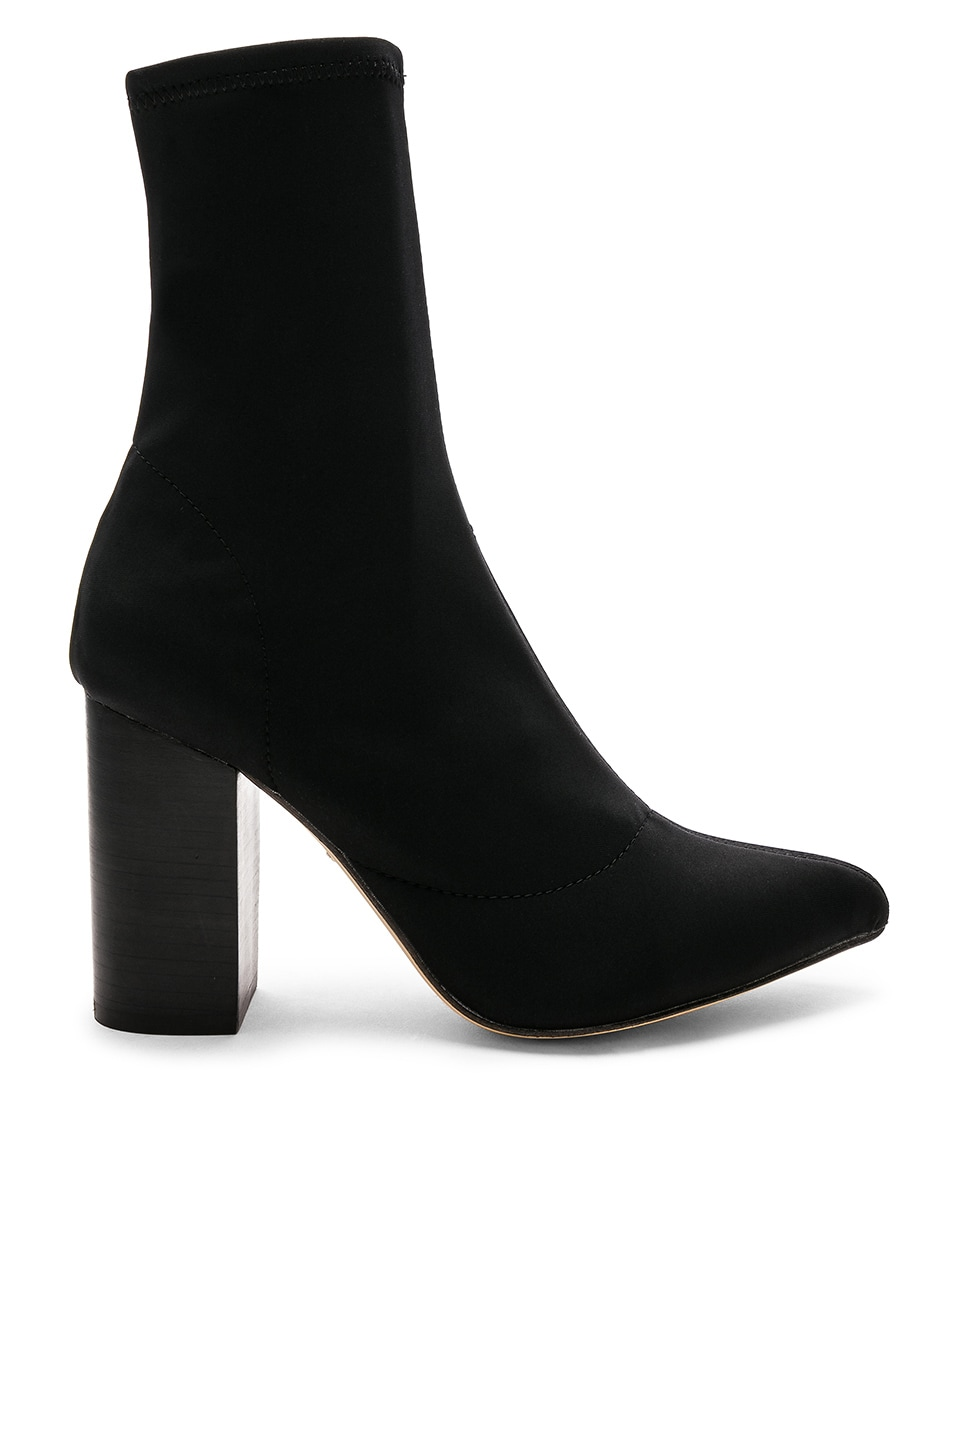 RAYE Fable Bootie in Black